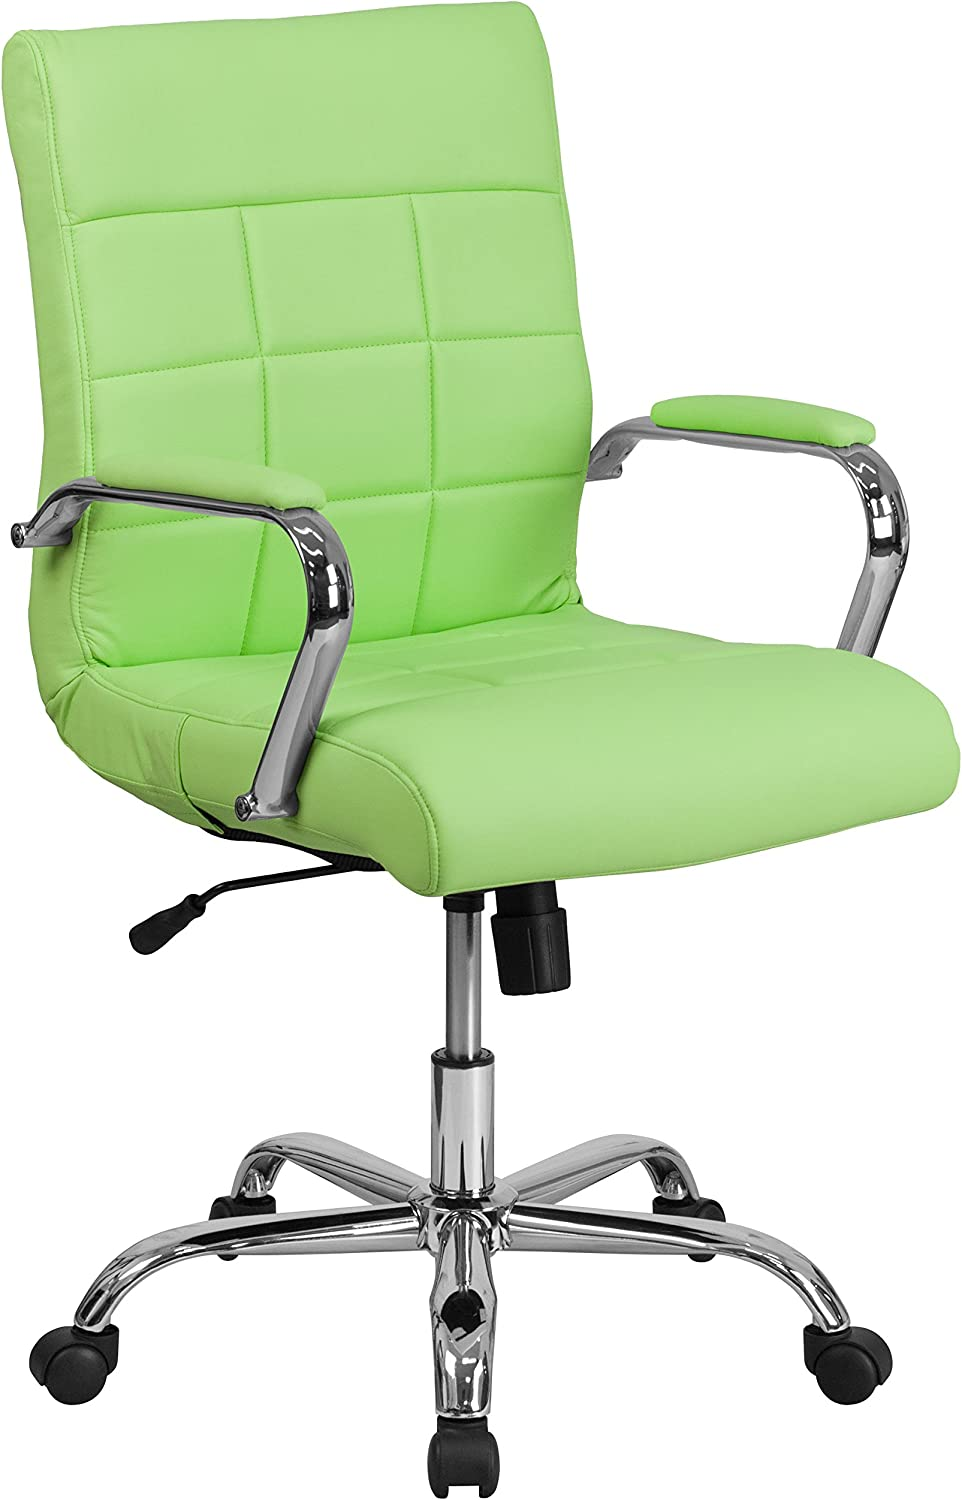 Flash Furniture GO-2240-GN-GG Mid Back Green Vinyl Executive Swivel Office Chair with Chrome Arms